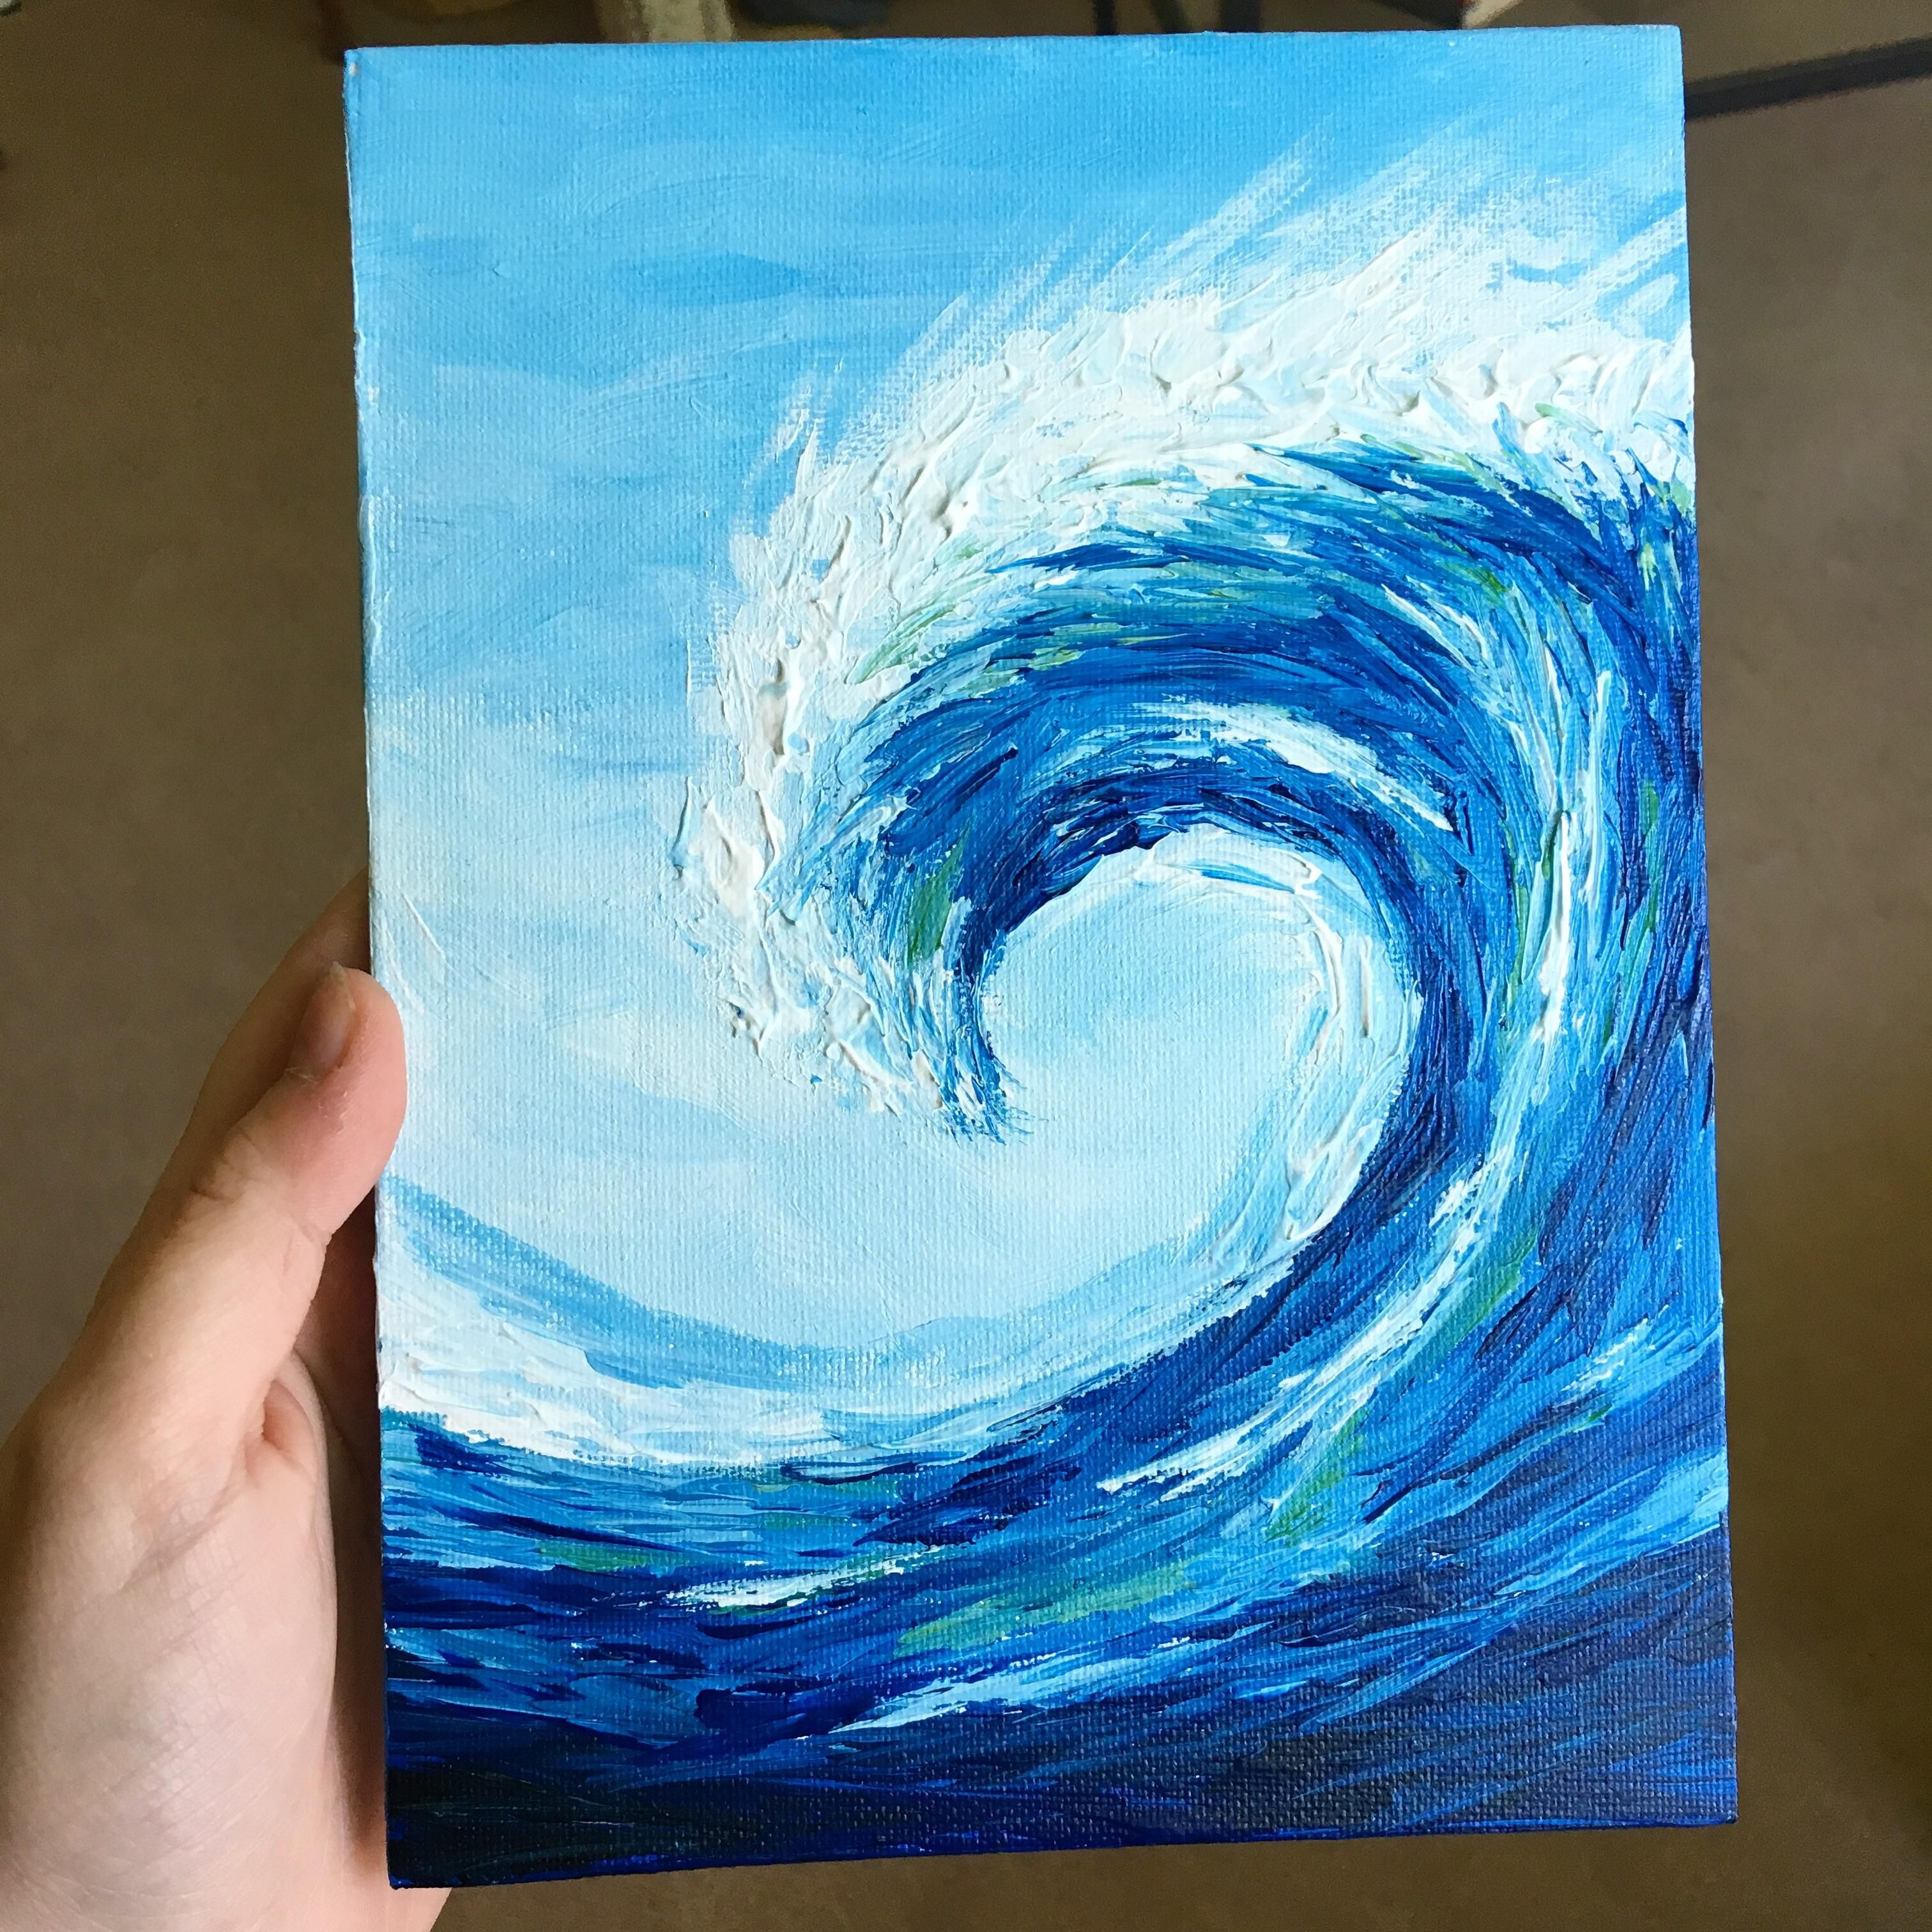 One Of My First Paintings Acrylic On Canvas 6x8 Inches Small Art Painting